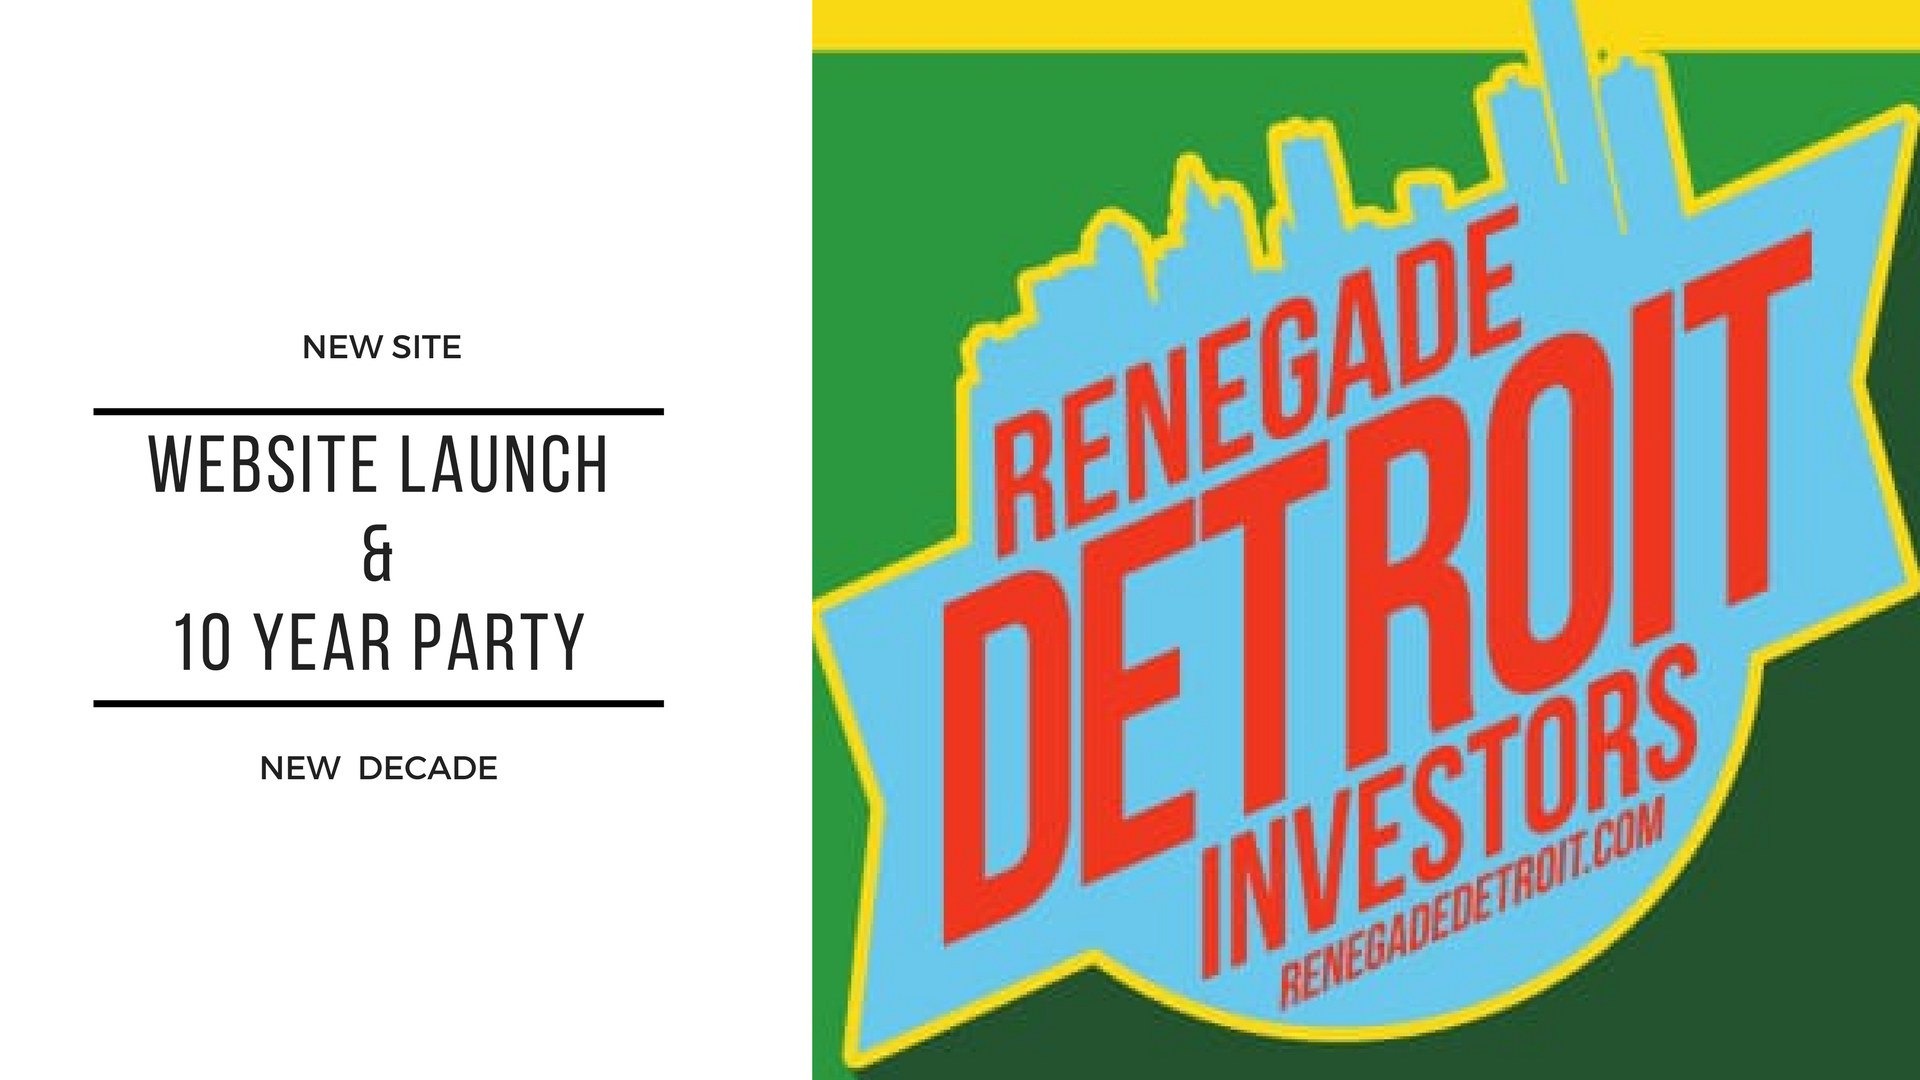 renegade-detroit-launch-party